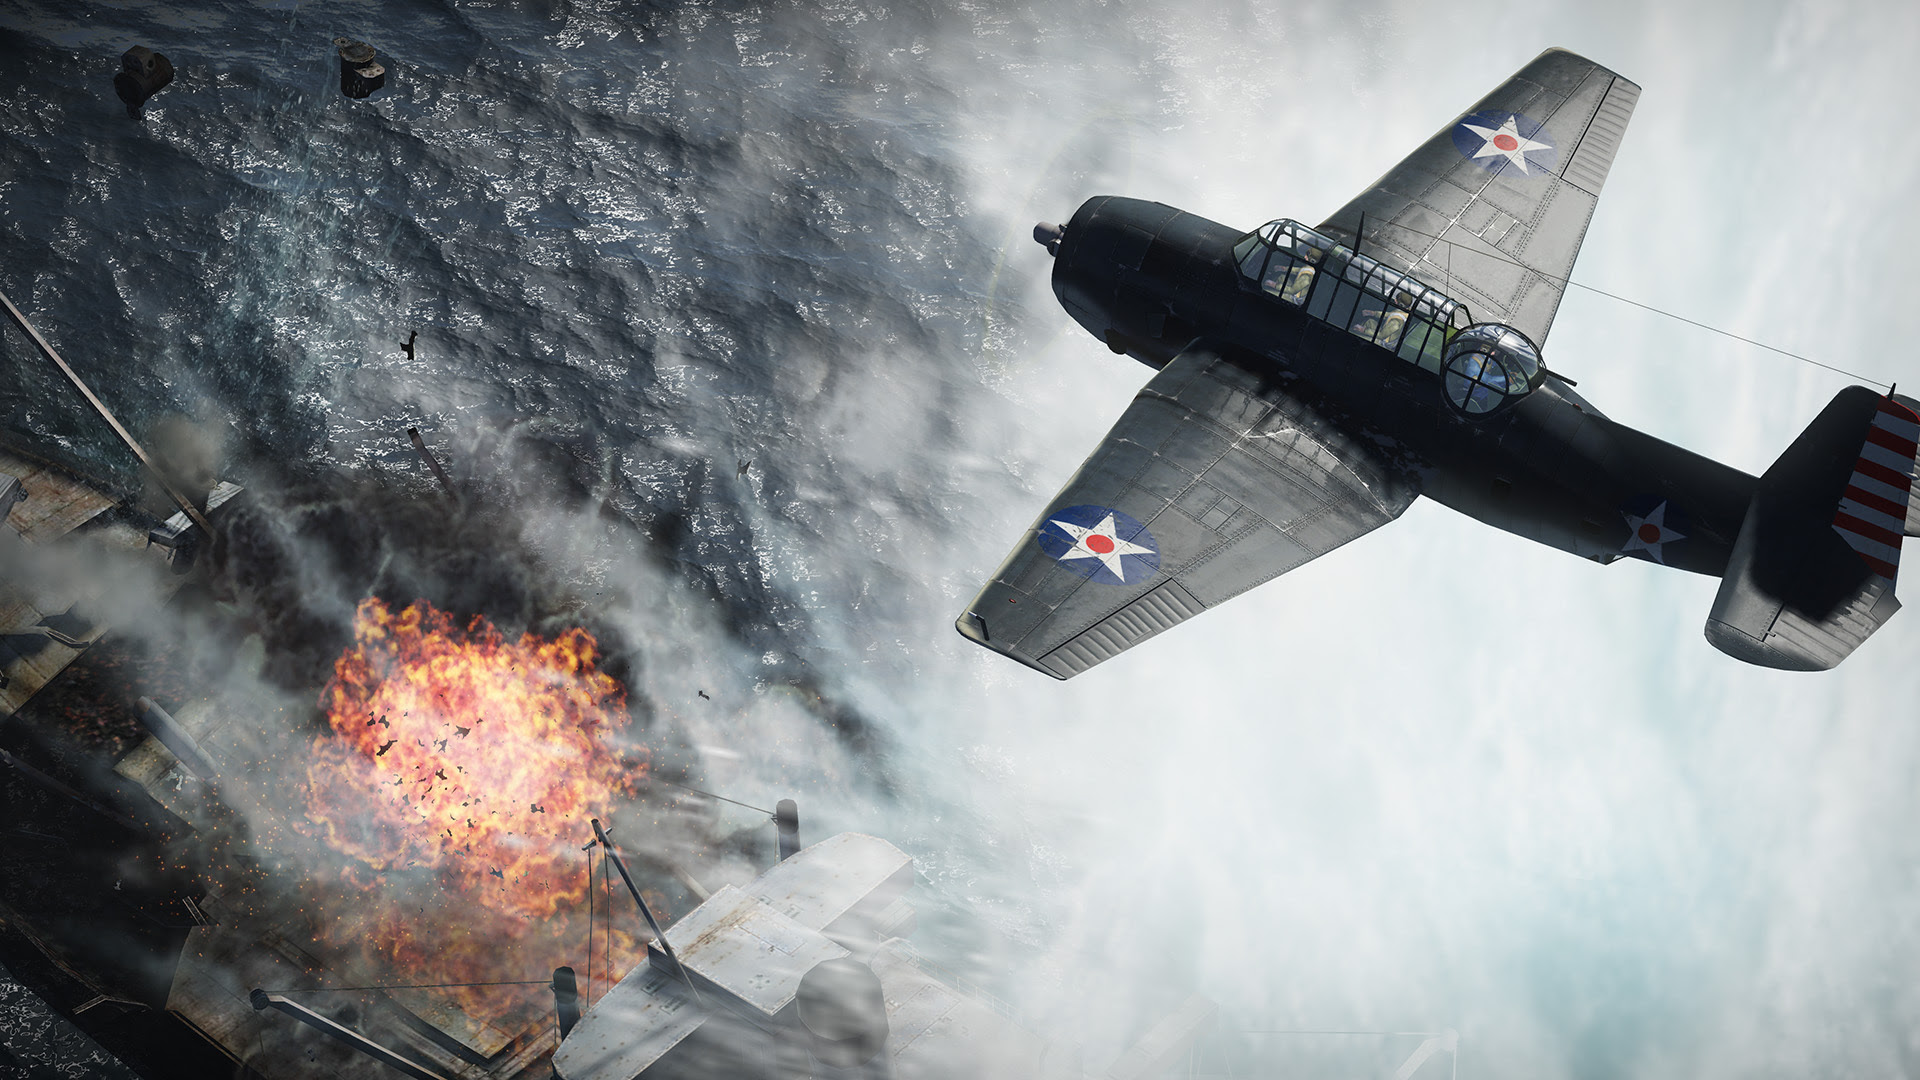 War Thunder american plane wallpapers and images - wallpapers, pictures, photos